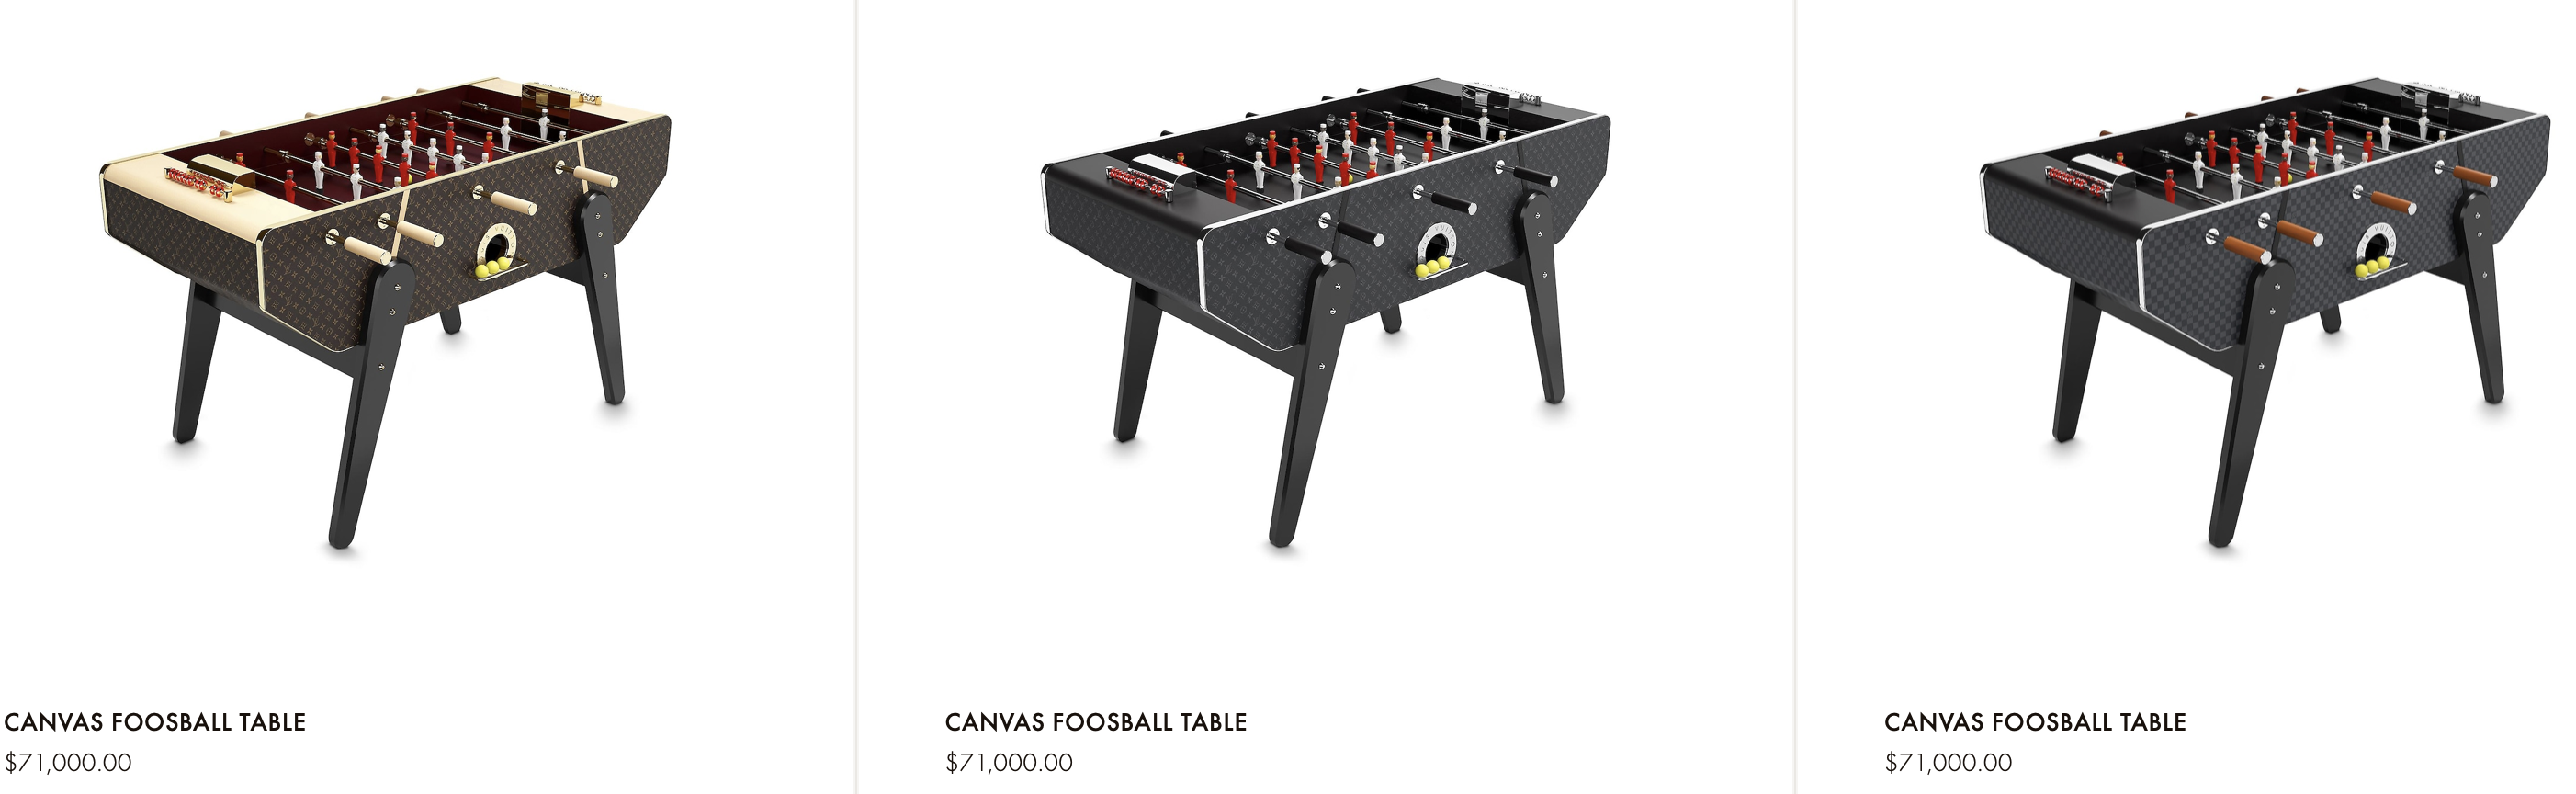 Louis Vuitton Foosball Tables